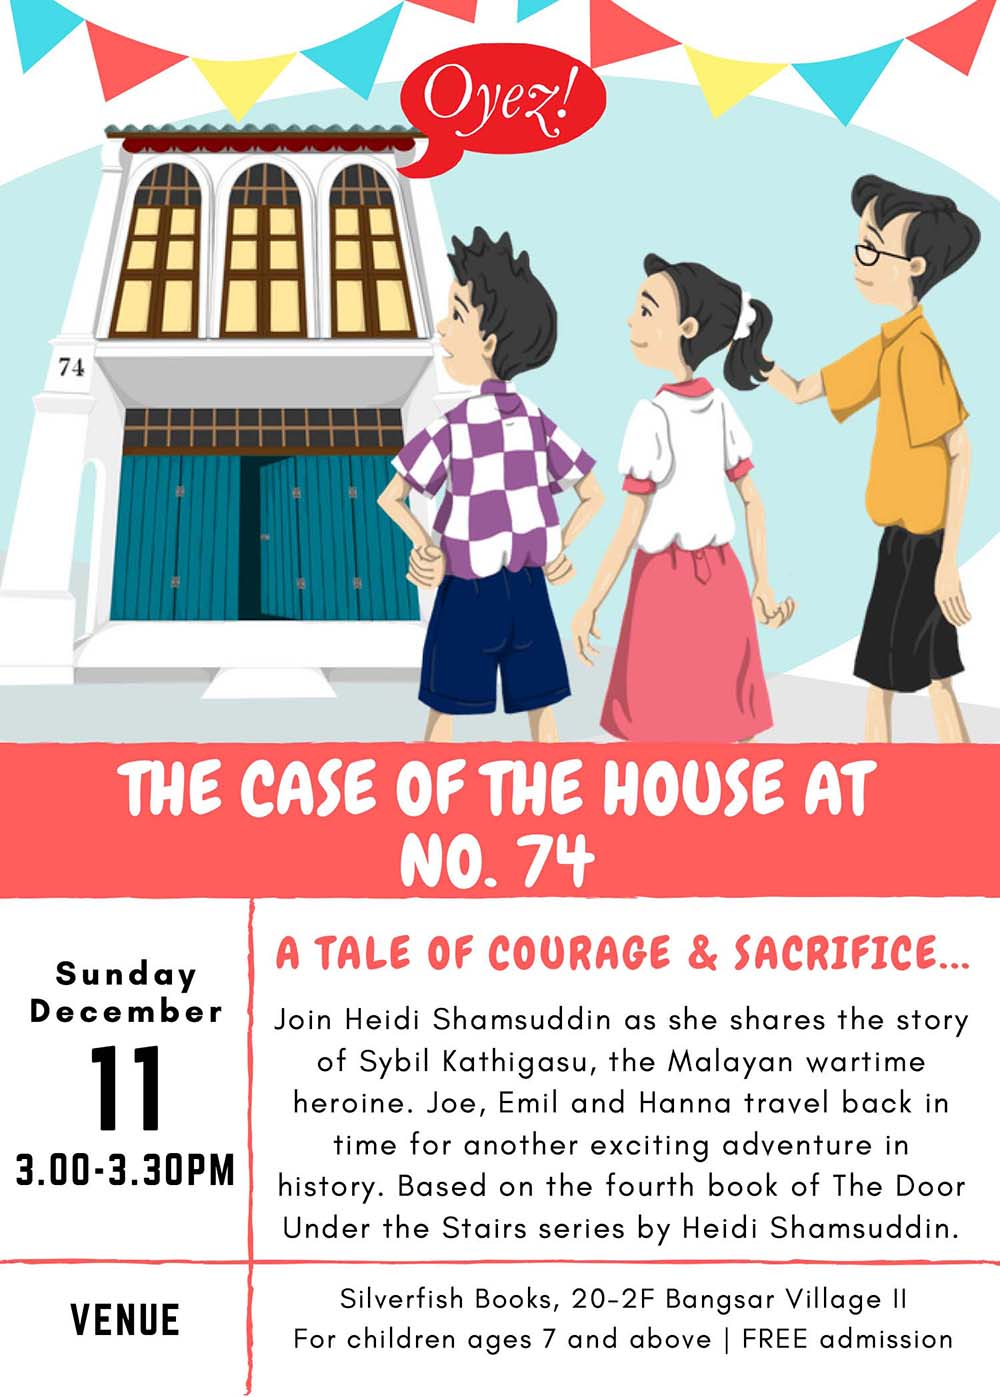 The Case of The House At No. 74 - storytime based on children's chapter book by Heidi Shamsuddin, illustrated by Lim Lay Koon